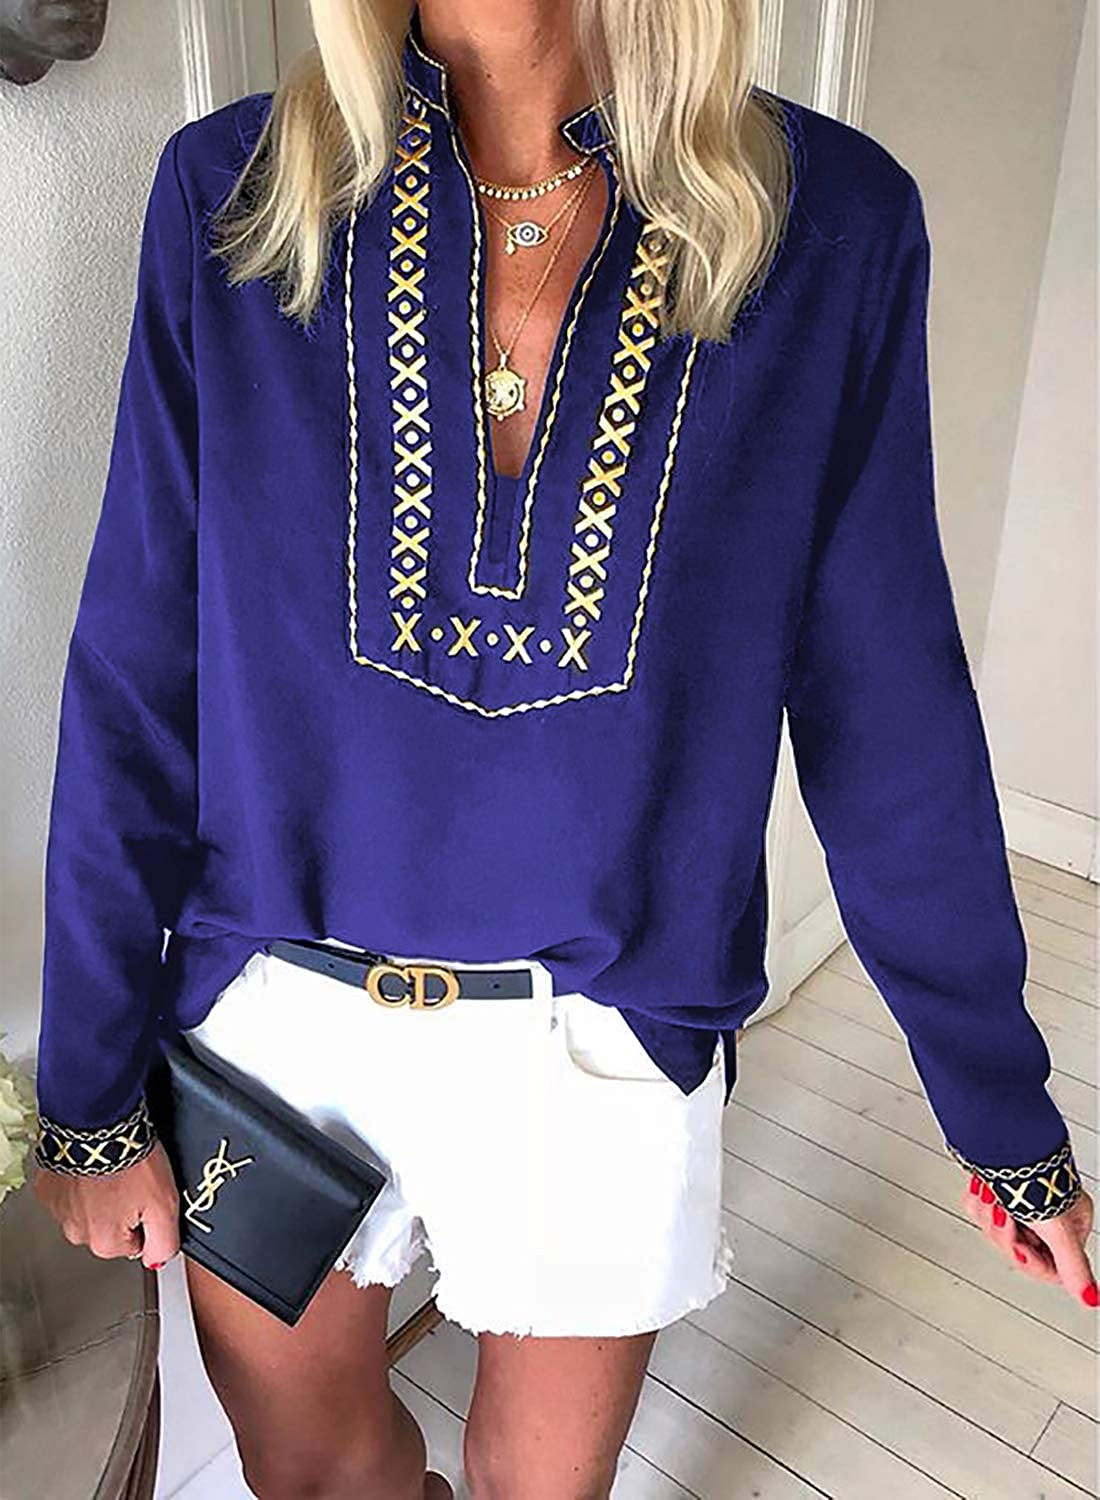 Aleumdr Womens Casual Boho Embroidered V Neck 3//4 Sleeves Shirts Loose Blouse Tops S-XXL